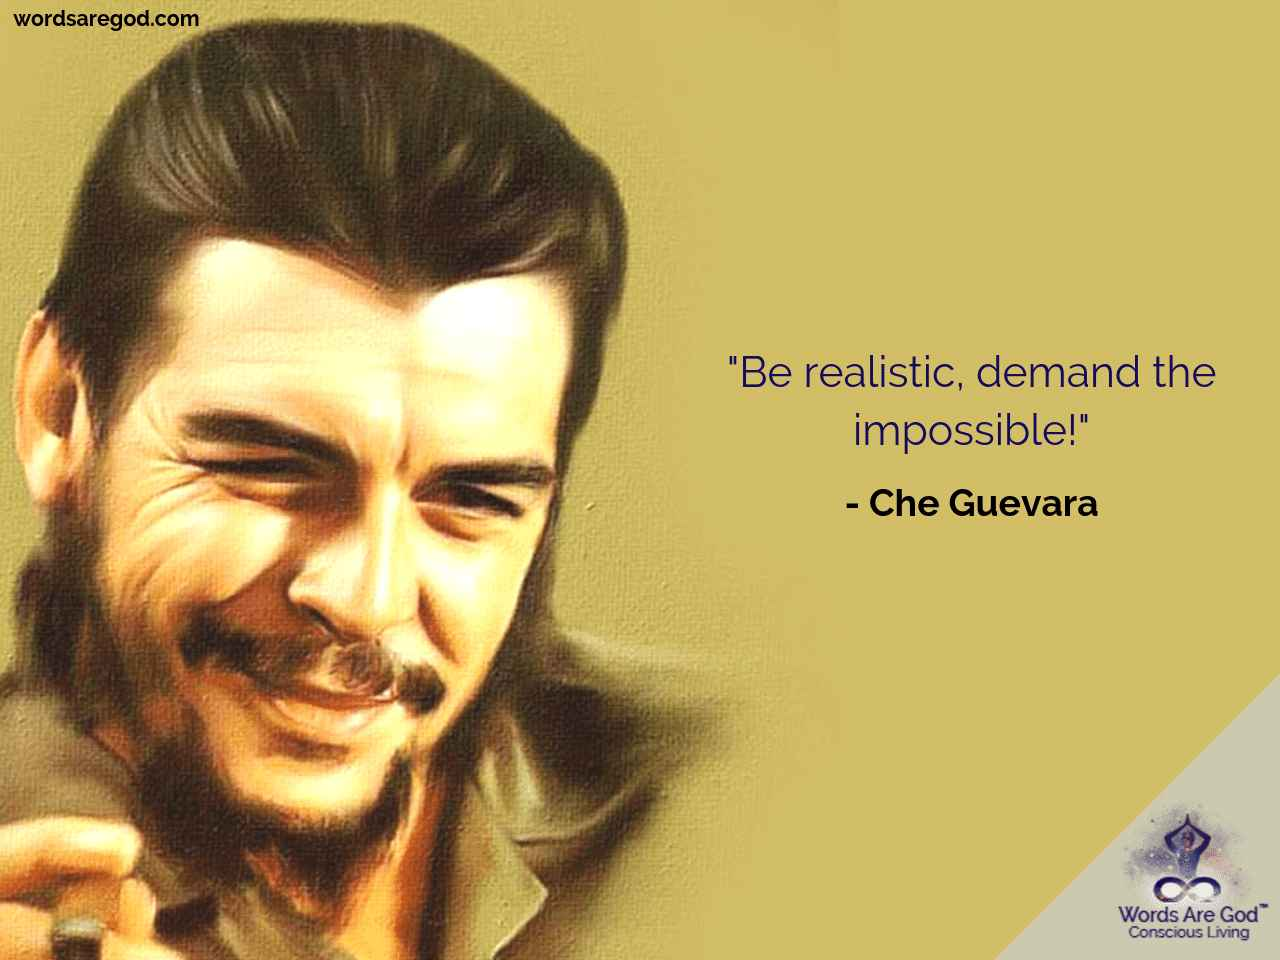 Che Guevara Best Quote by Che Guevara